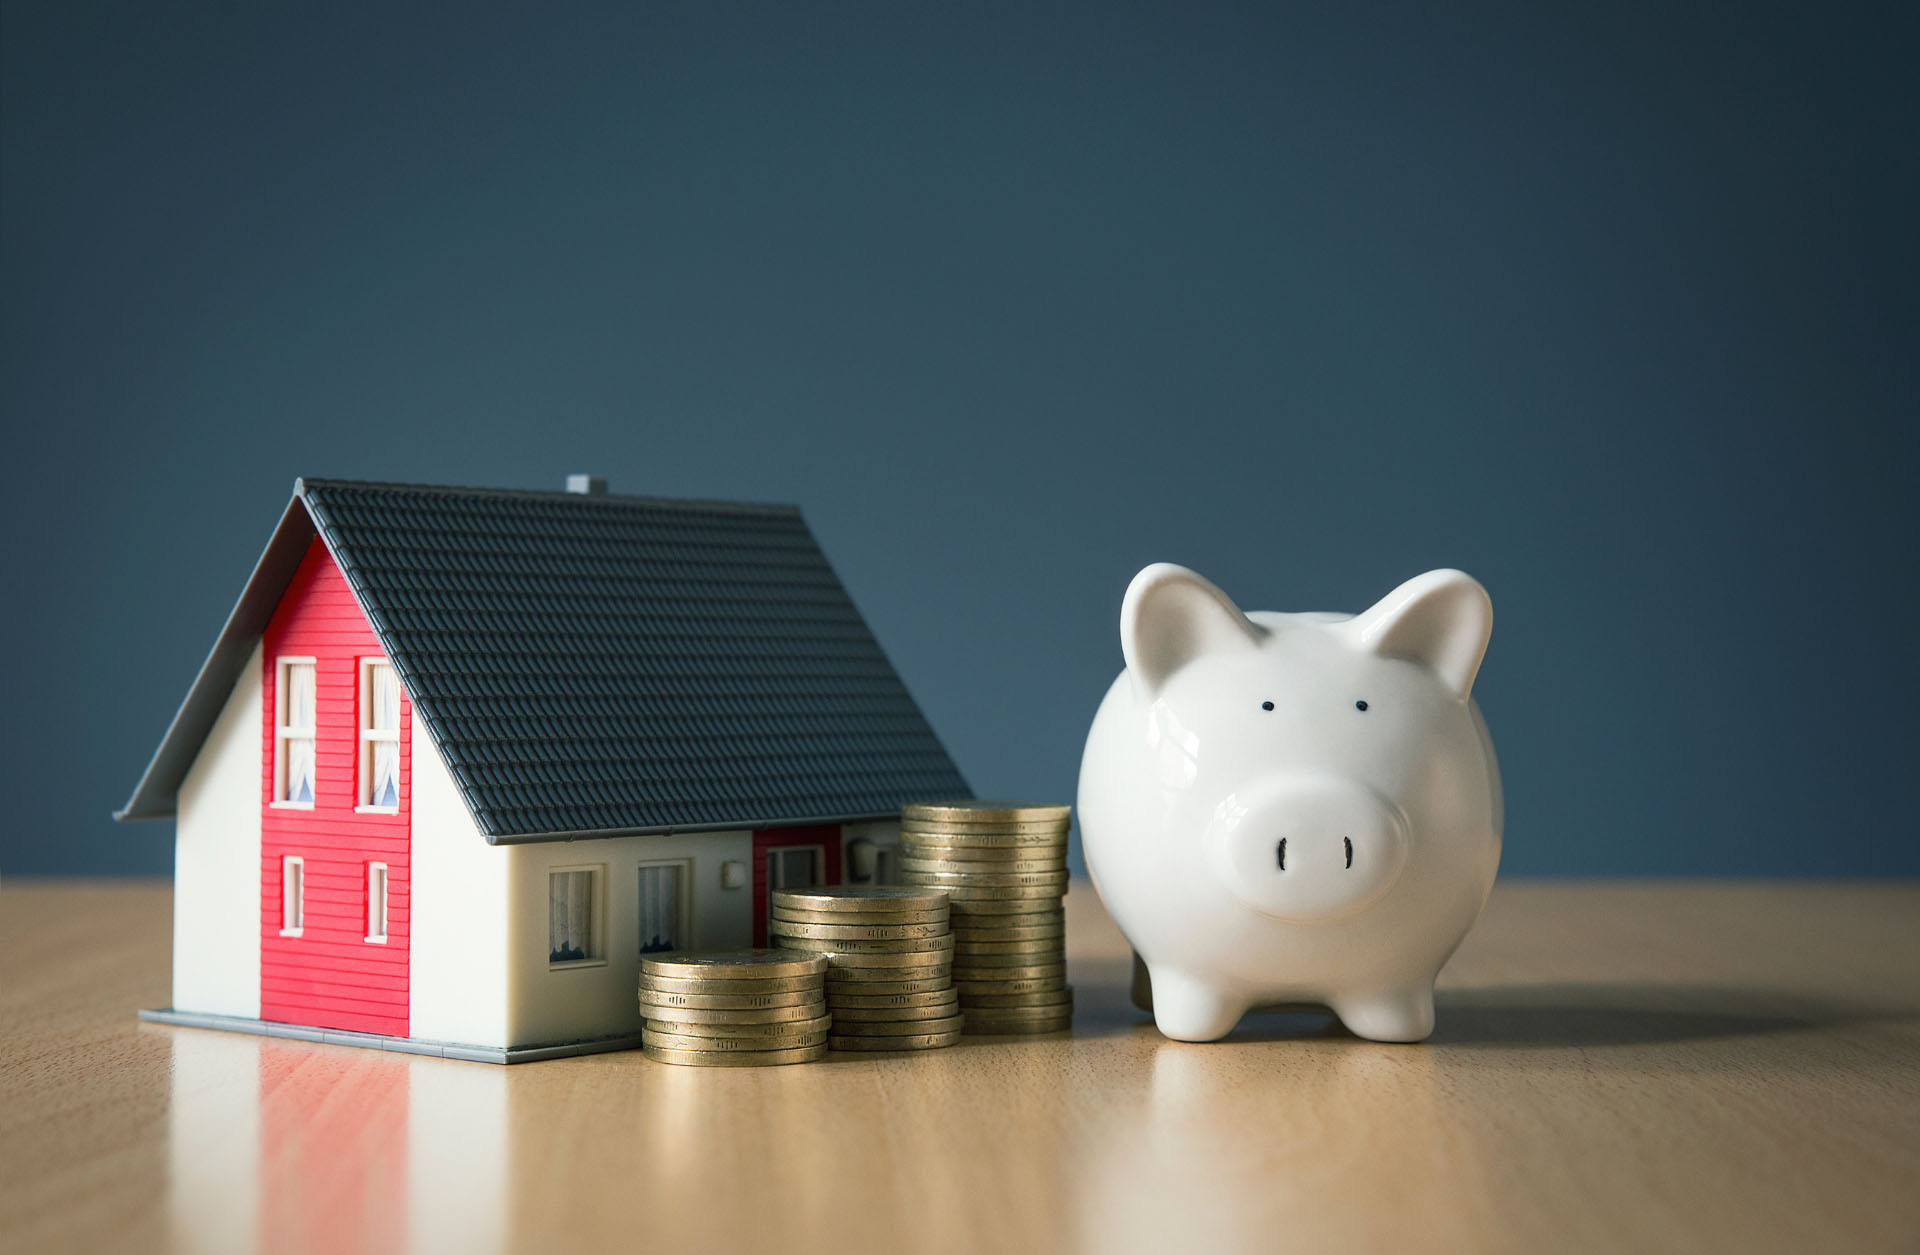 Piggy bank, coins and mock home